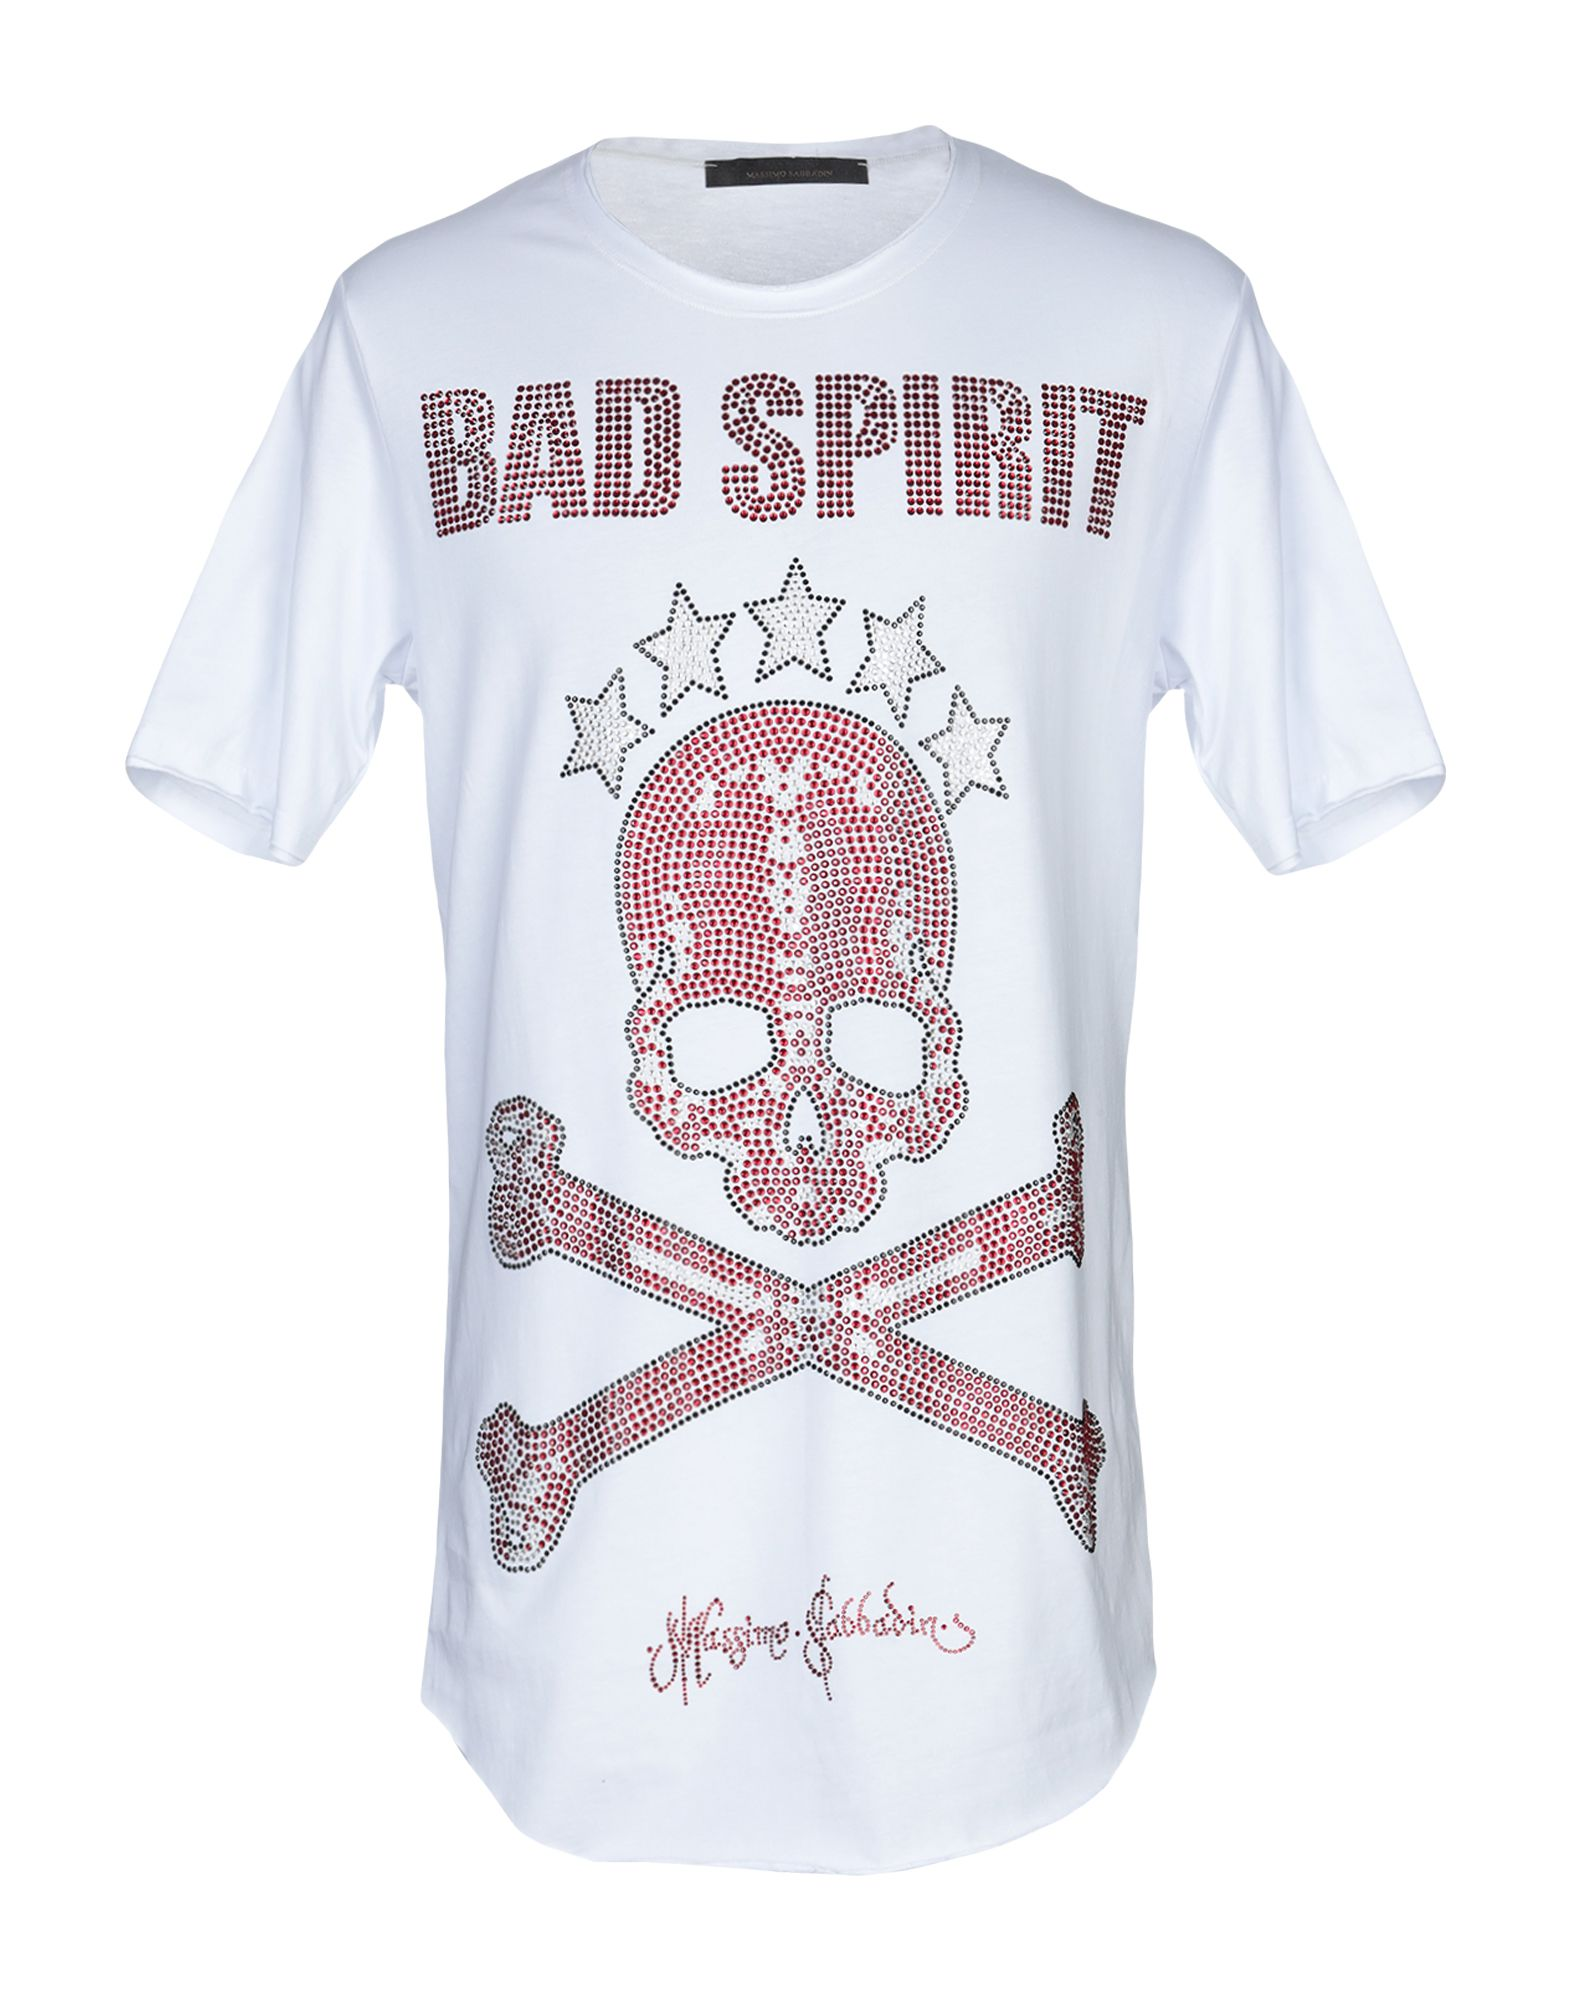 T-Shirt Bad Spirit herren - 12252444GE